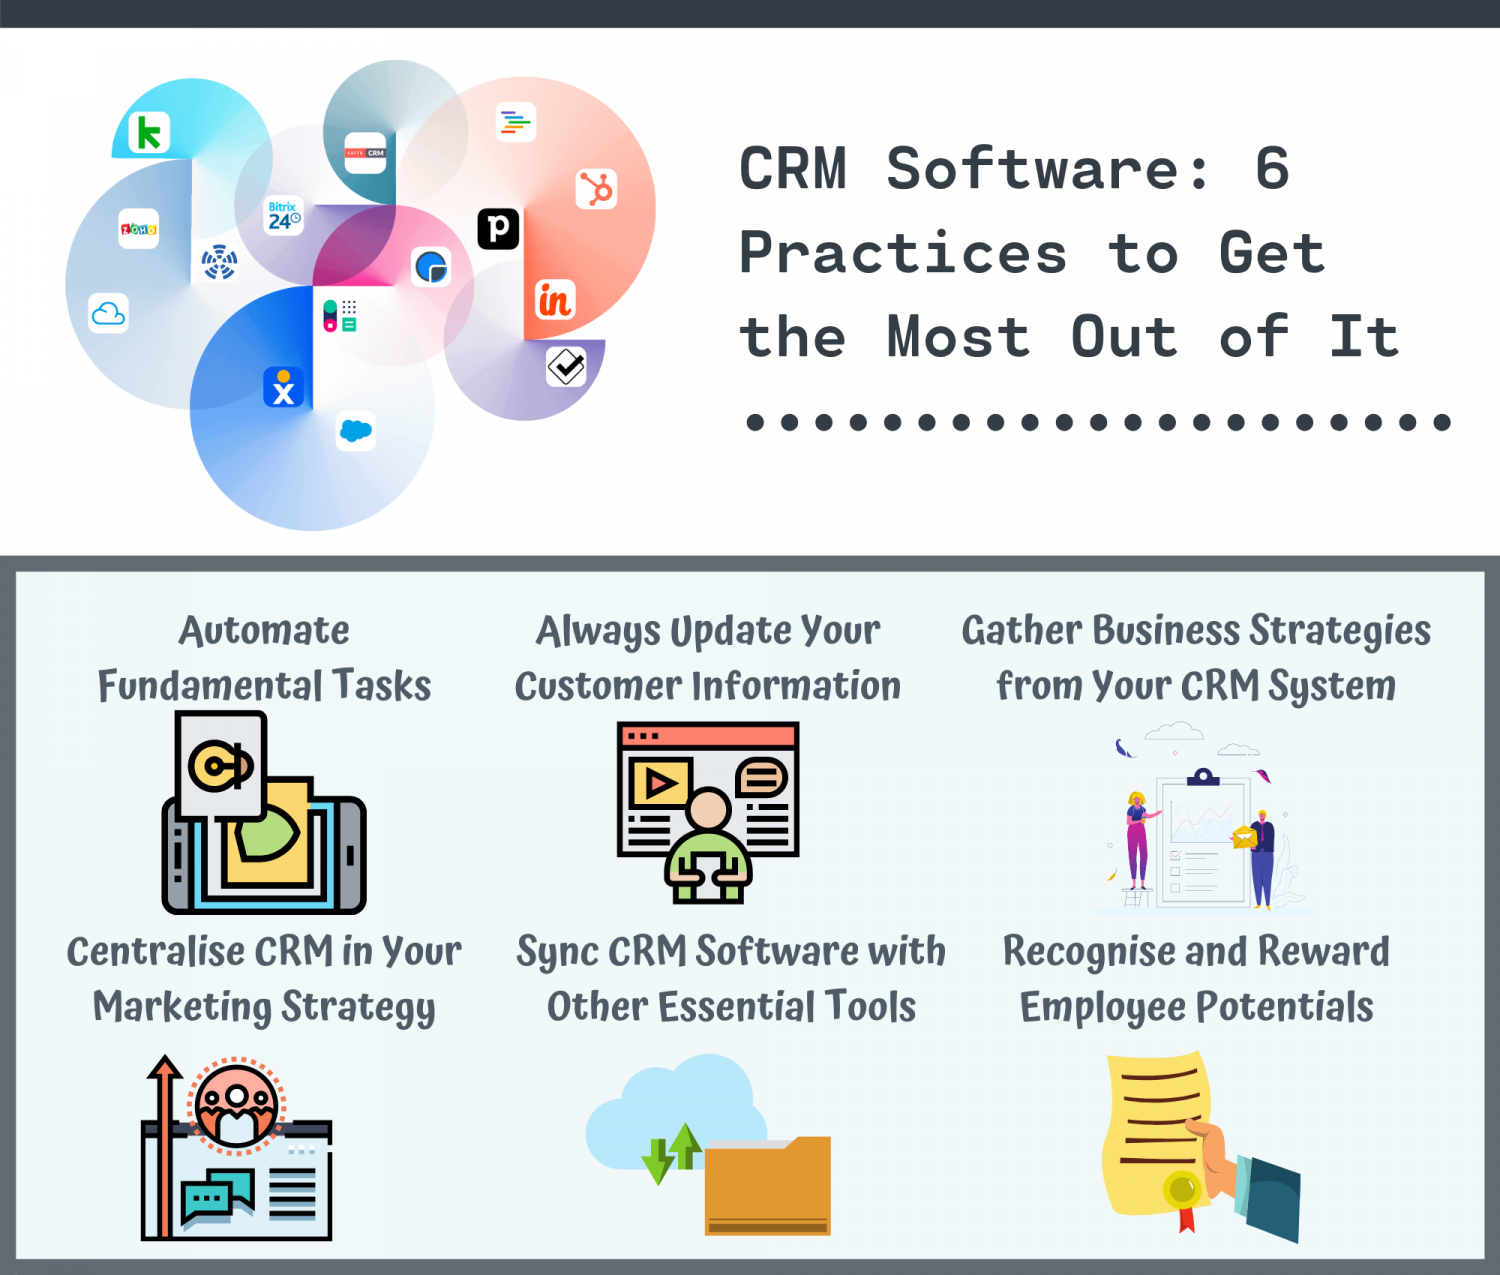 CRM Software: 6 Practices to Get the Most Out of It Infographic